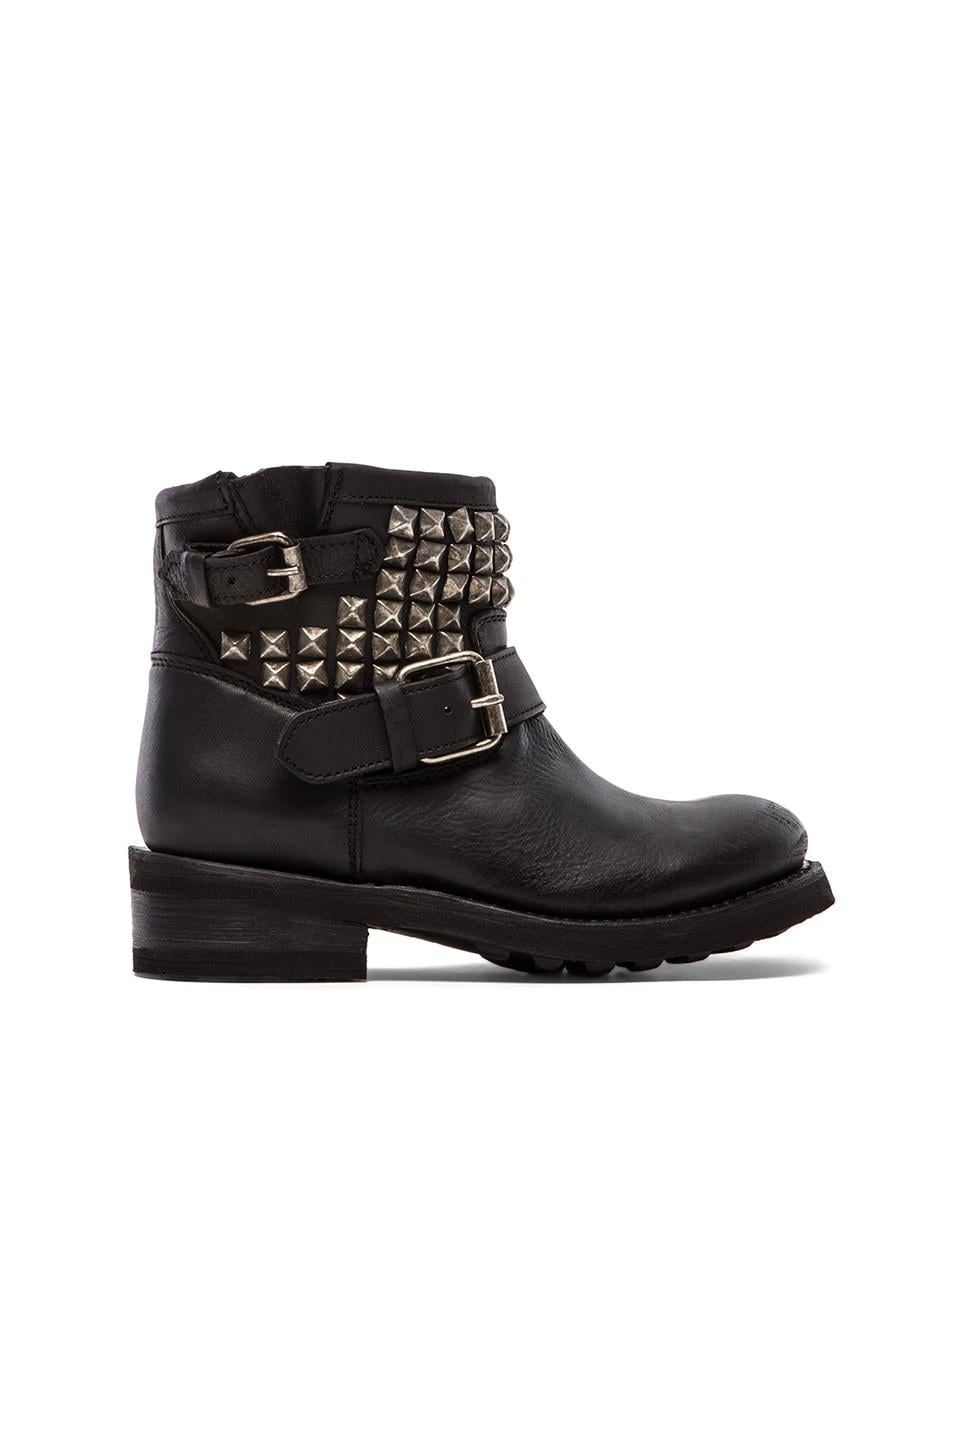 Ash Tramp Moto Boot in Black